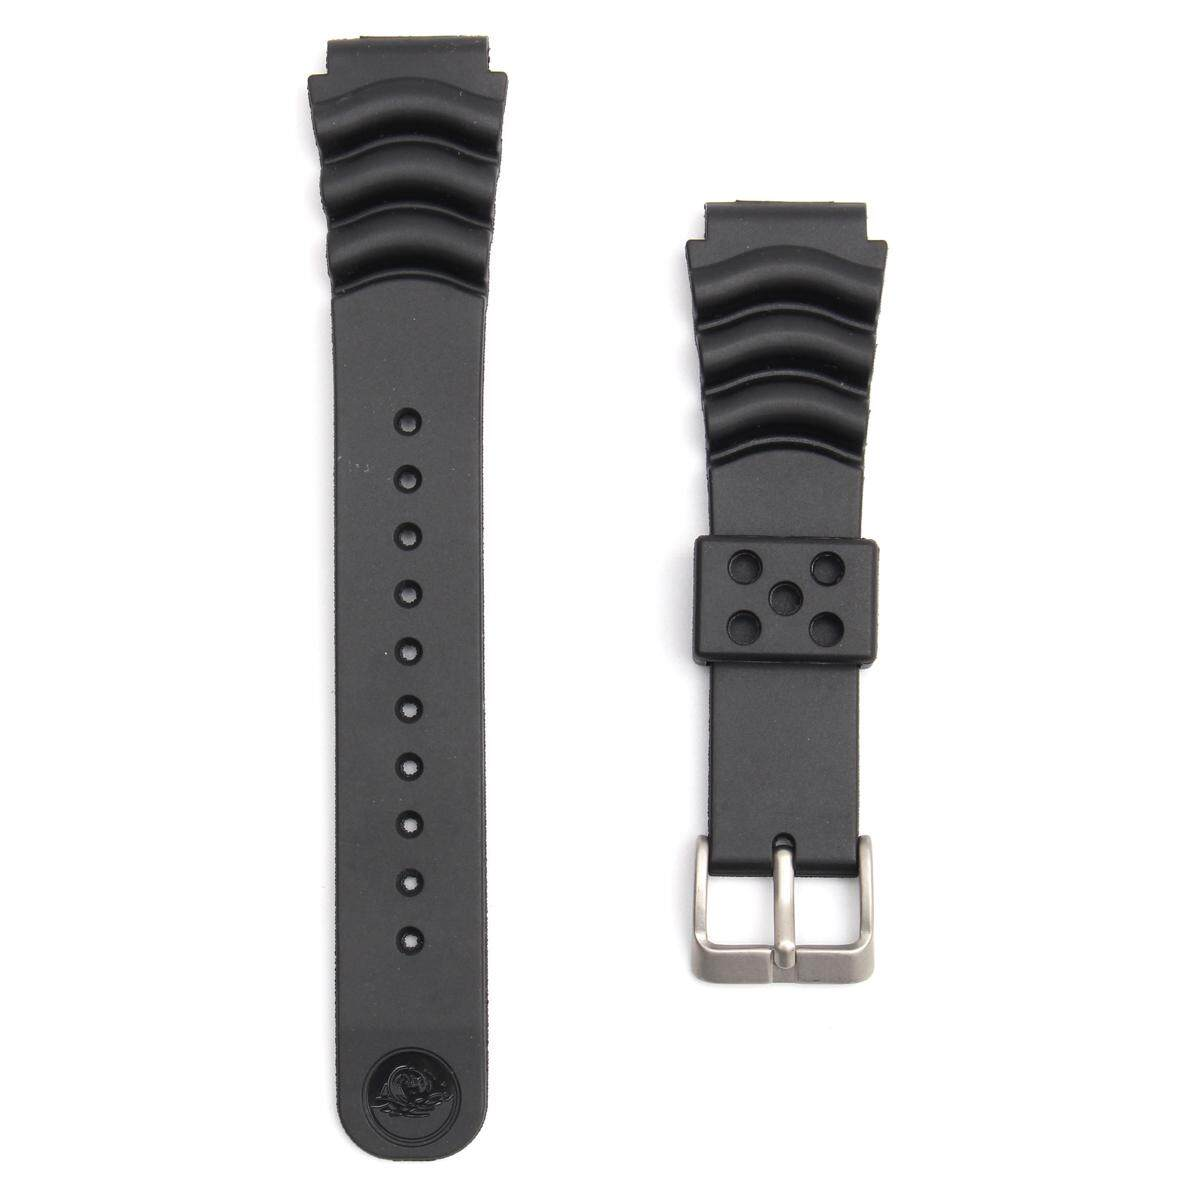 20mm/22mm Black Sport Scuba Diver Rubber Watch Band Strap For Sei Ko [20mm] By Glimmer.